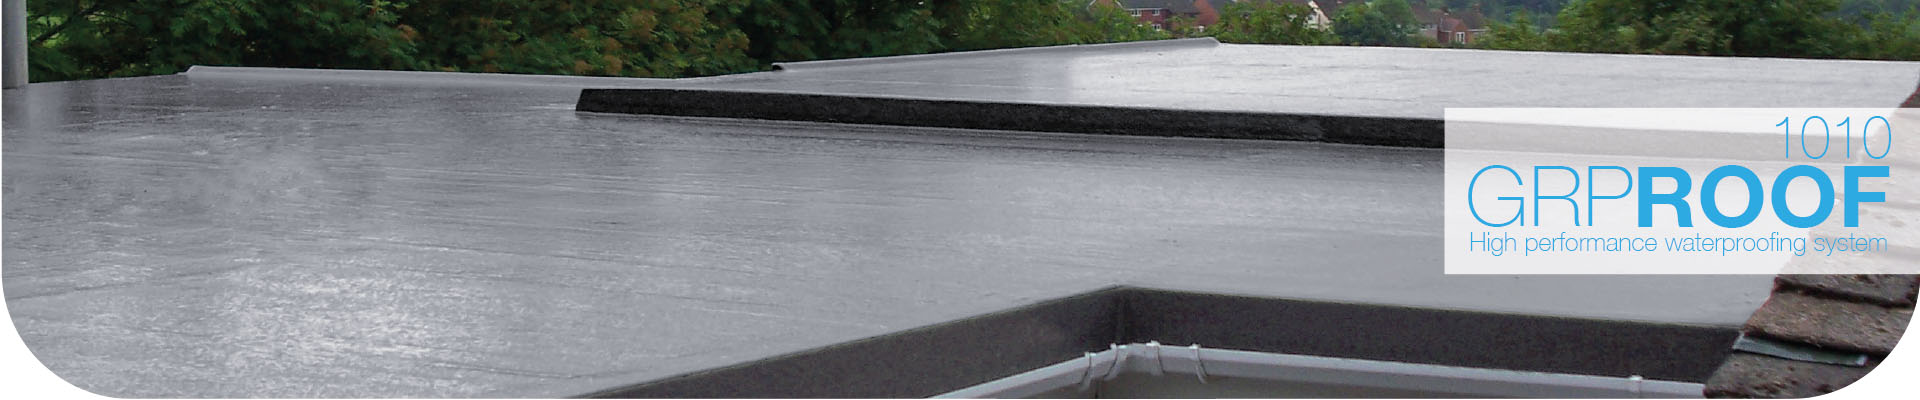 GRP Roof 1010 System